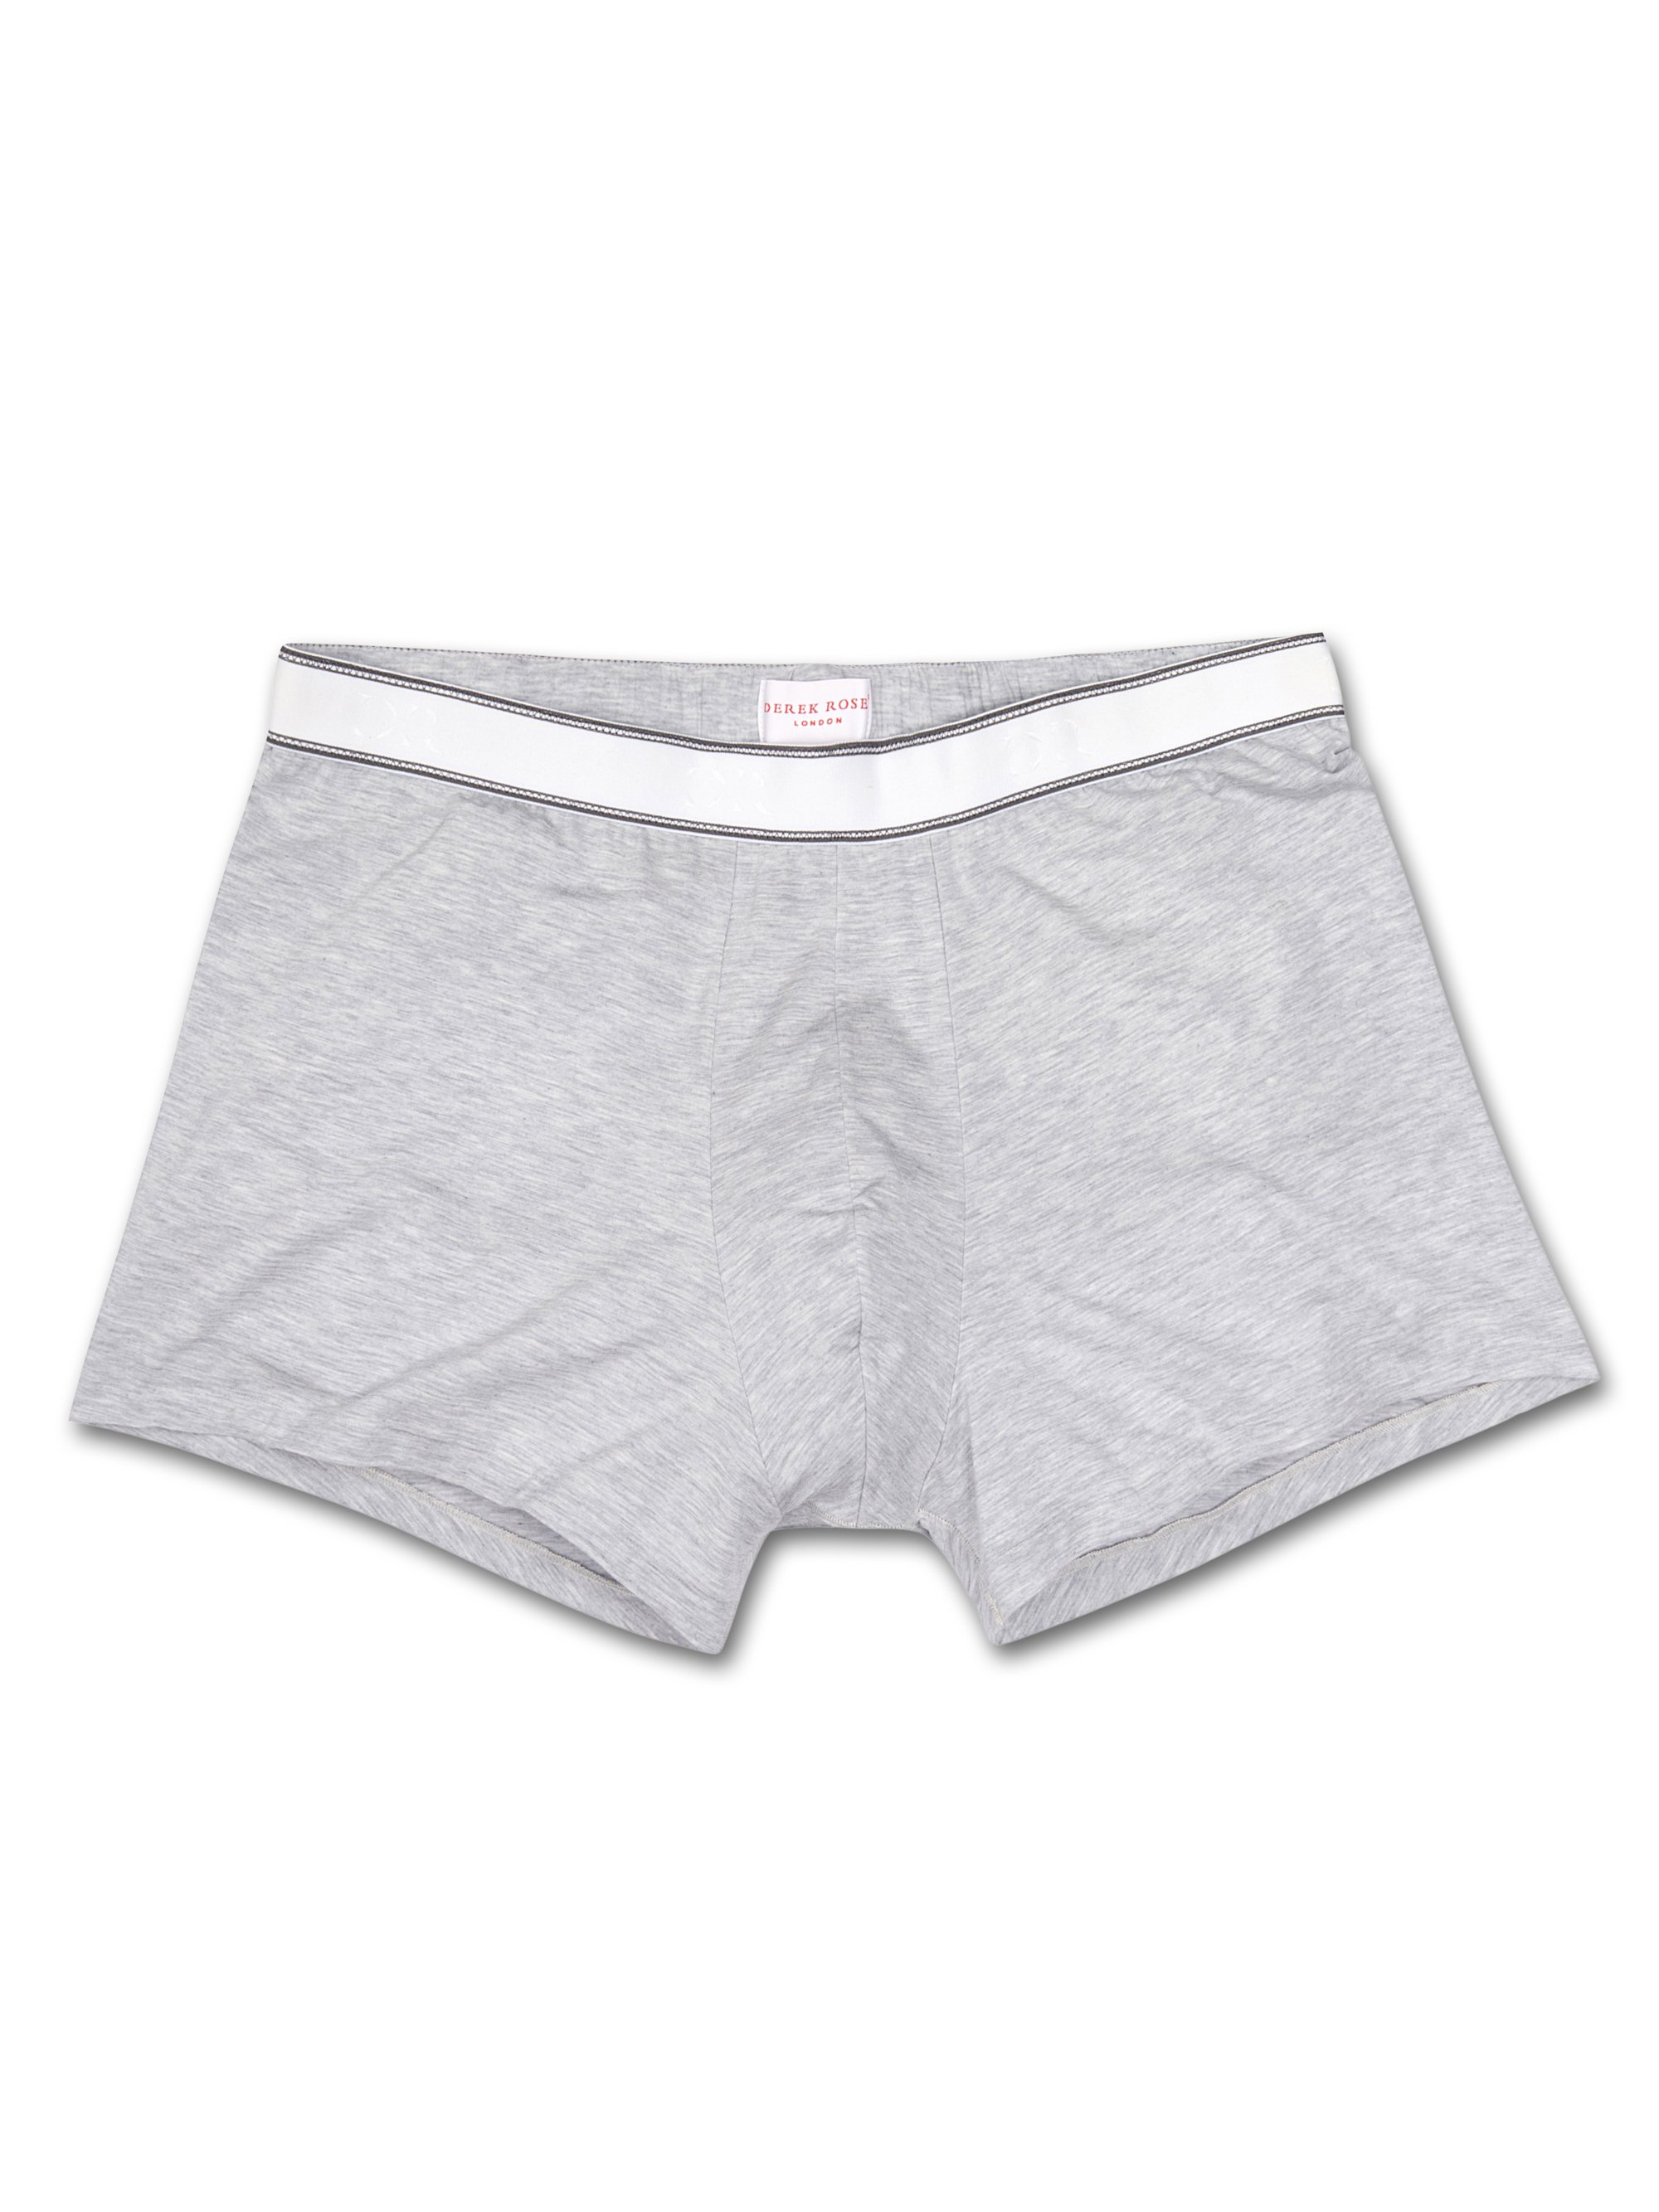 Men's Hipster Ethan Micro Modal Stretch Silver